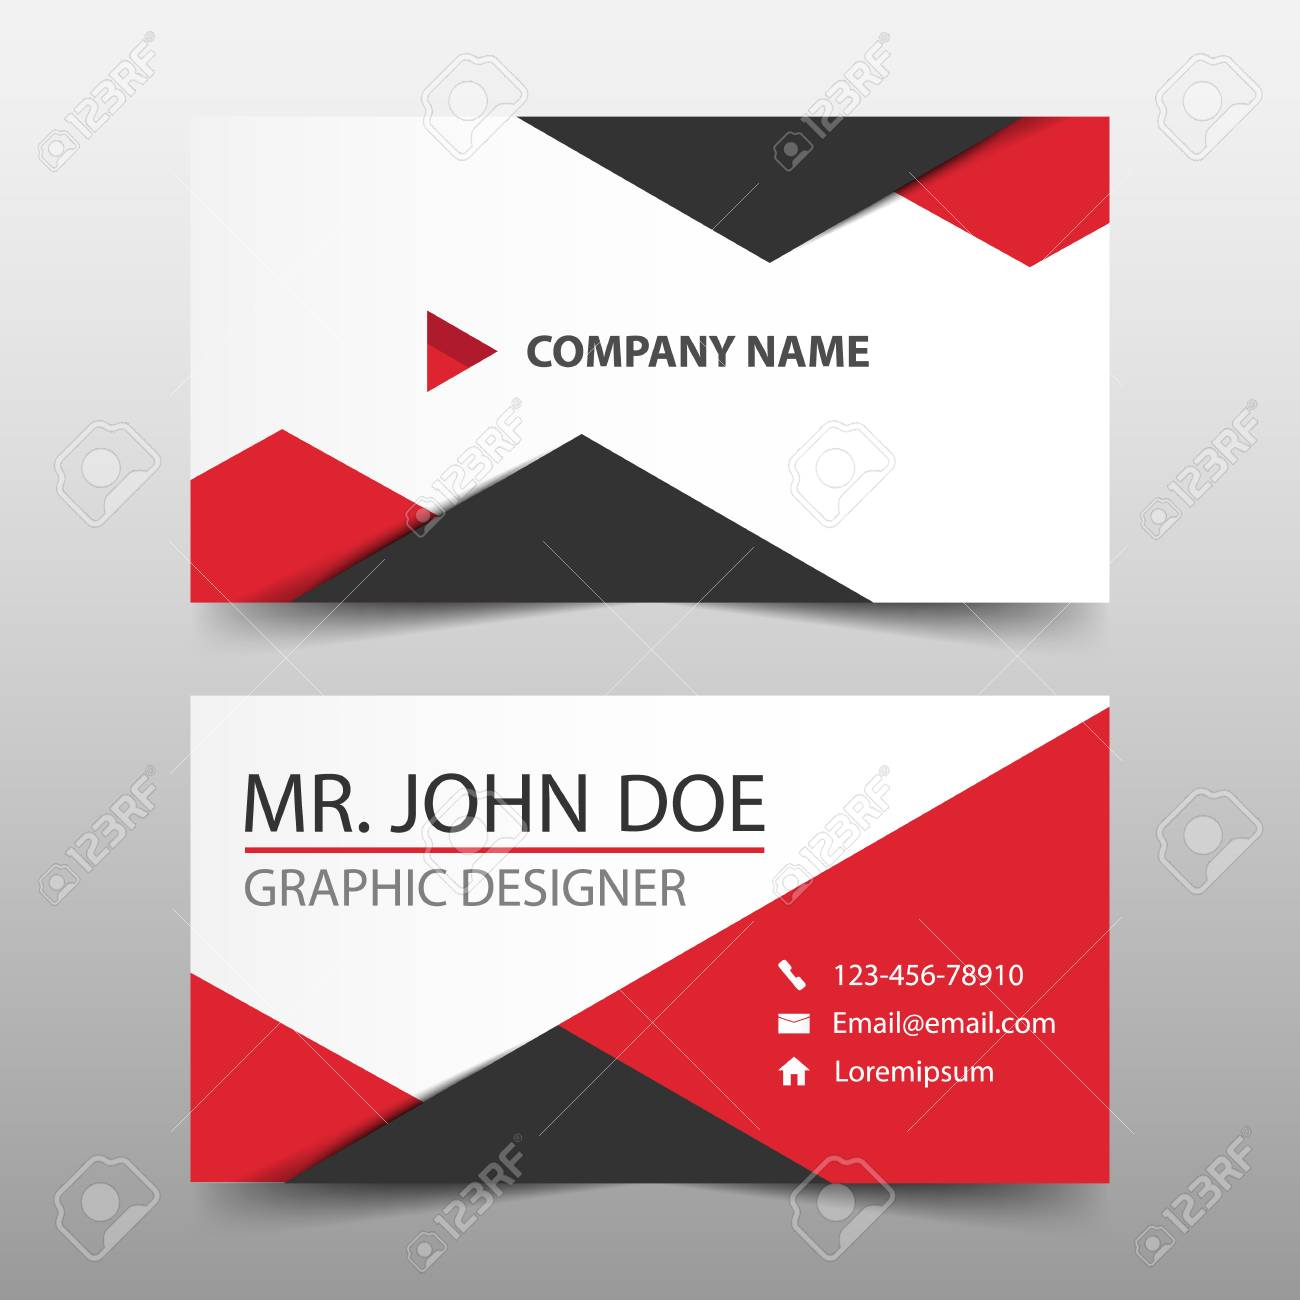 Red triangle corporate business card name card template horizontal red triangle corporate business card name card template horizontal simple clean layout design template reheart Gallery